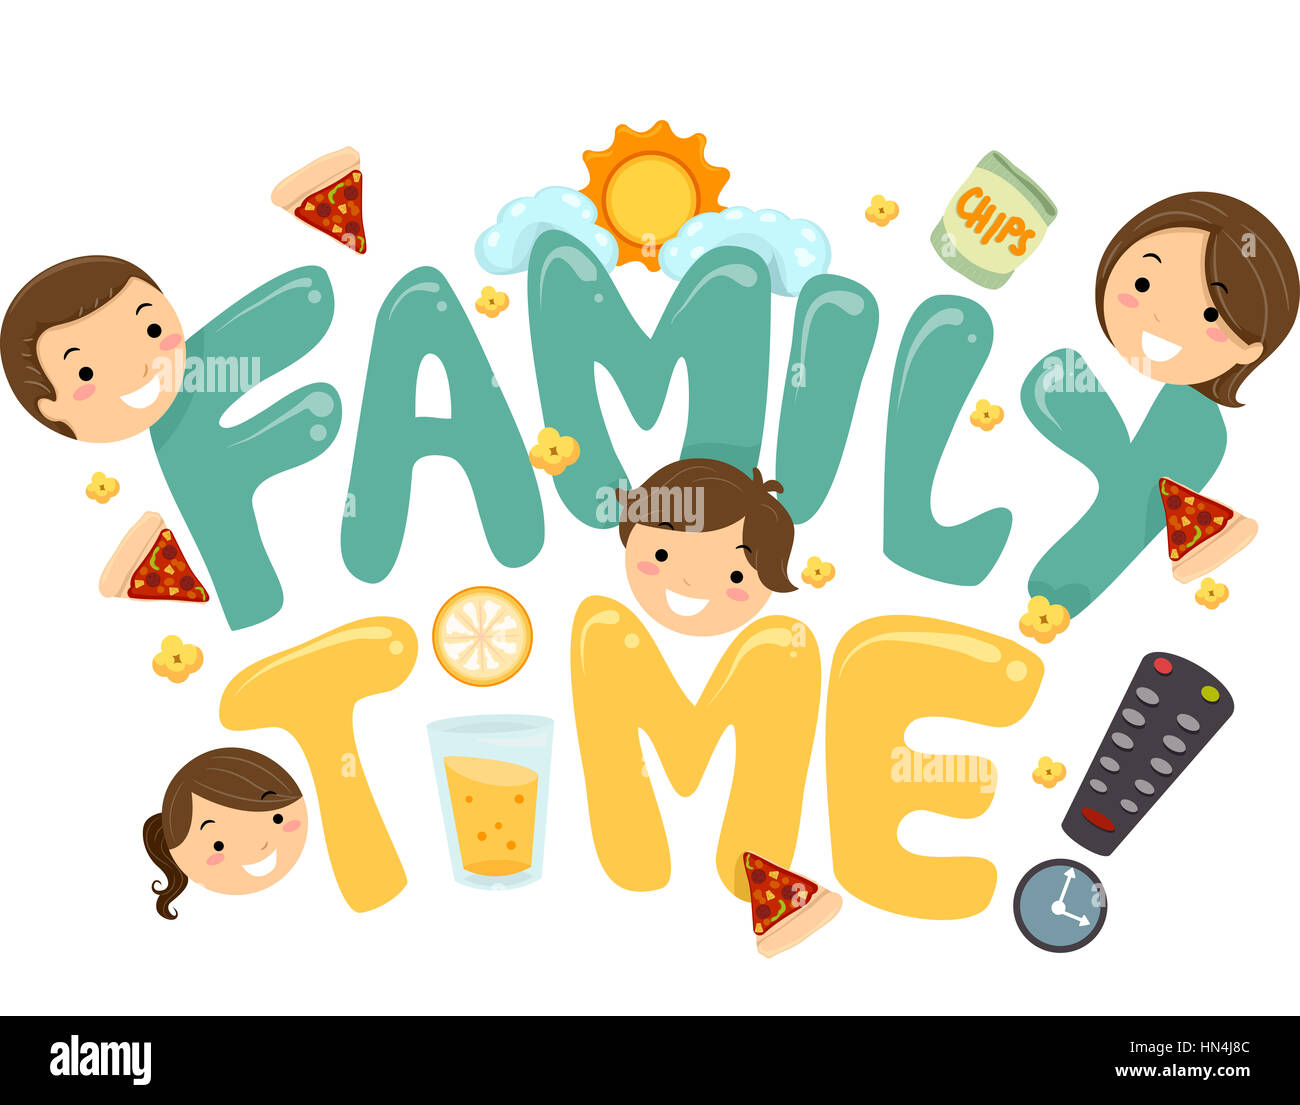 Illustration of a Family TV Time Lettering - Stock Image